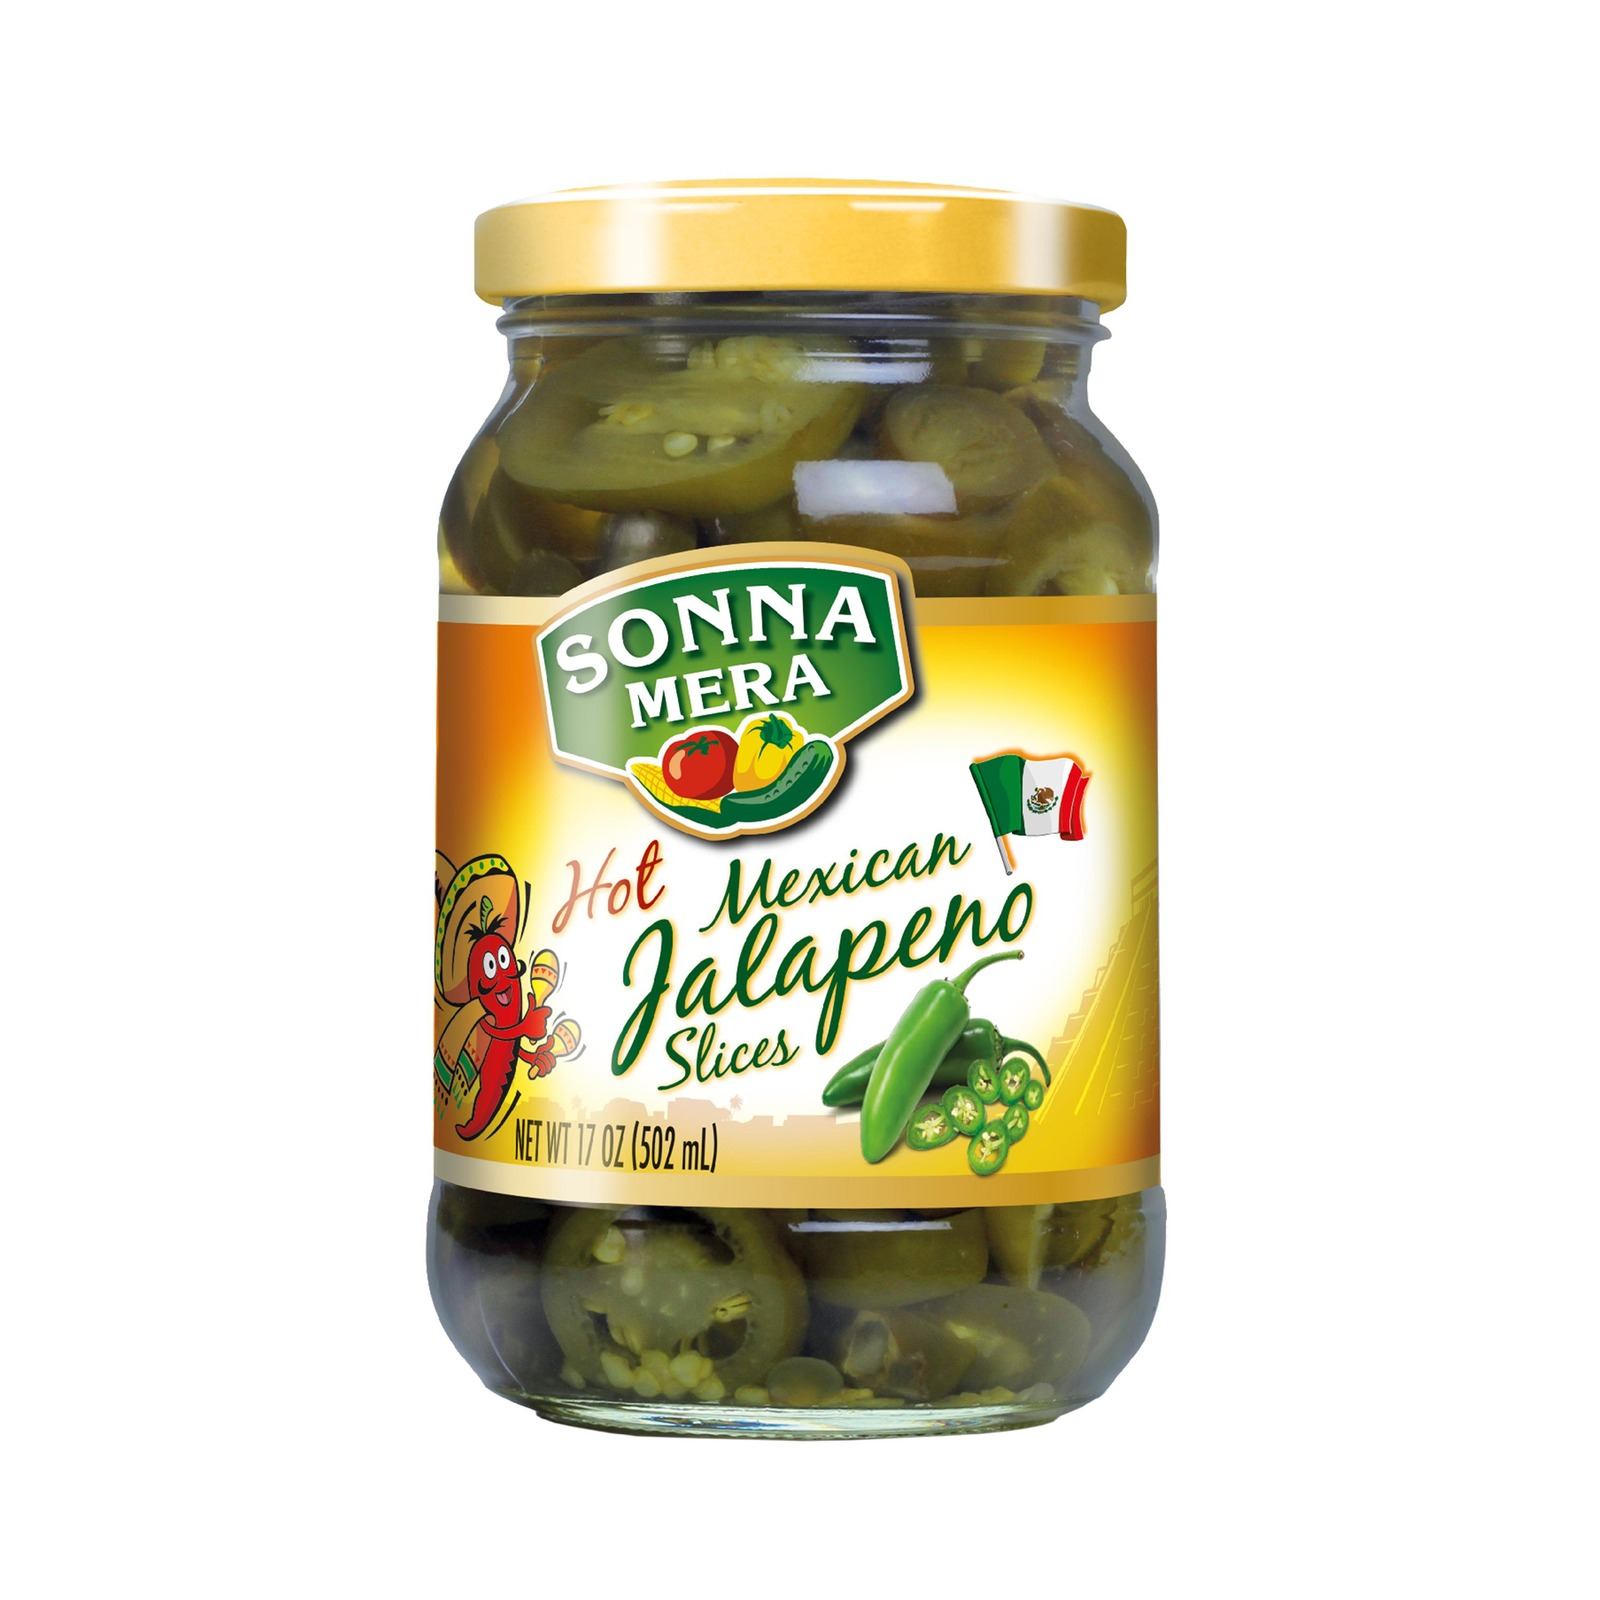 SONNAMERA Hot Mexican Jalapeno - By Sonnamera